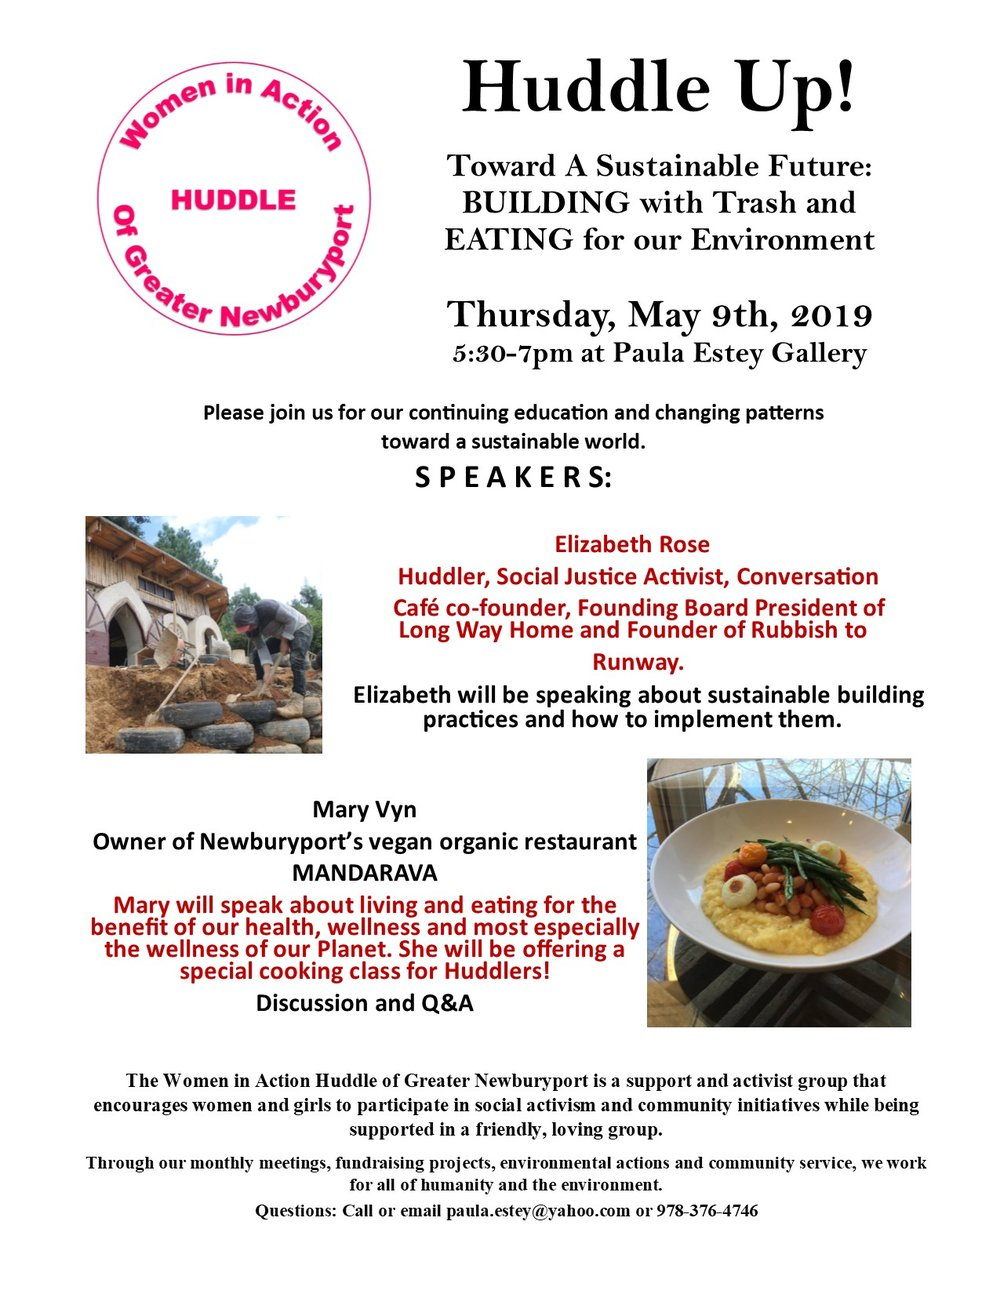 Huddle Meeting Flyer MAY 2019.jpg